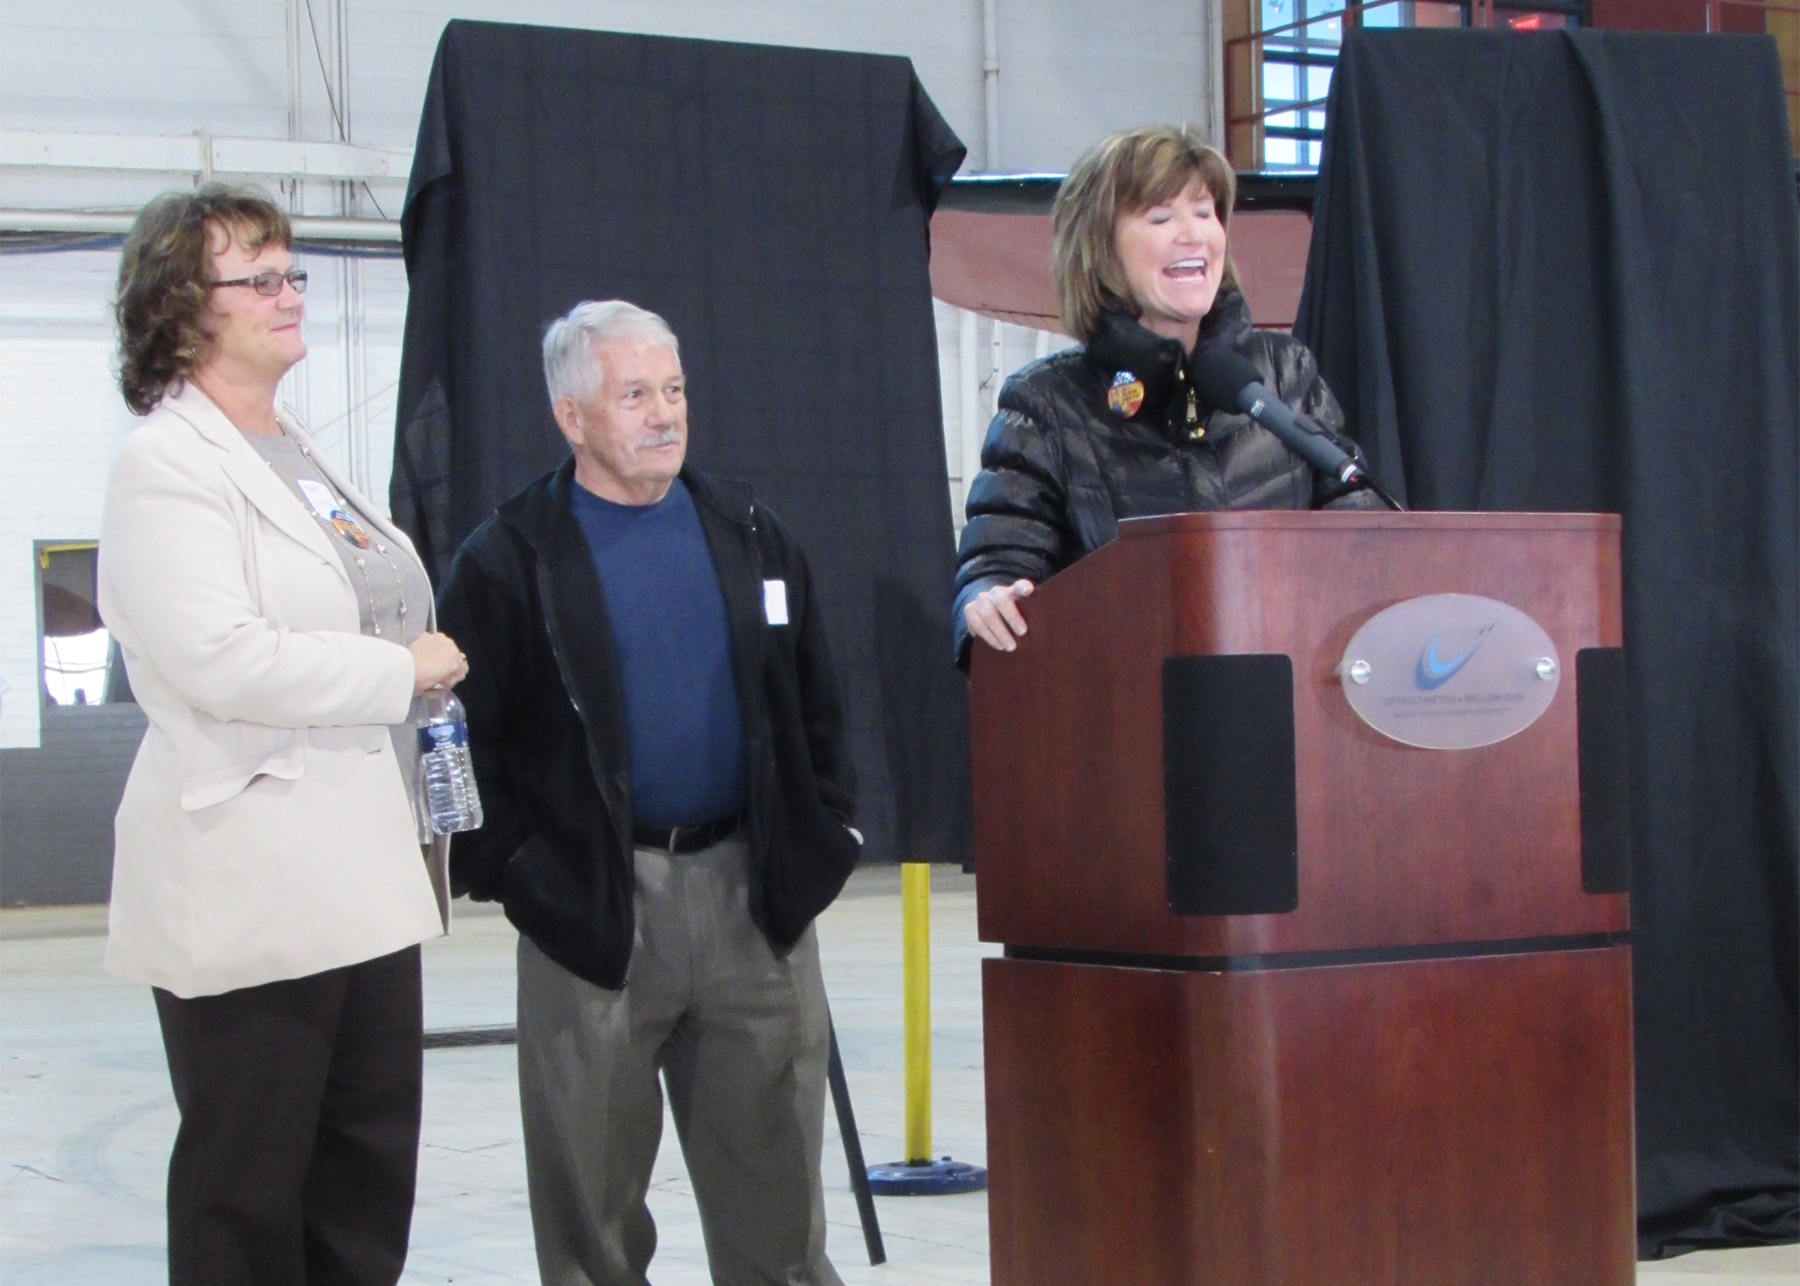 Ypsilanti Township SUpervisor Brenda Stumbo speaks at the October 30, 2014 event at which Yankee Air Museum announced its official purchase of a portion of the historic Willow Run Bomber Plant.